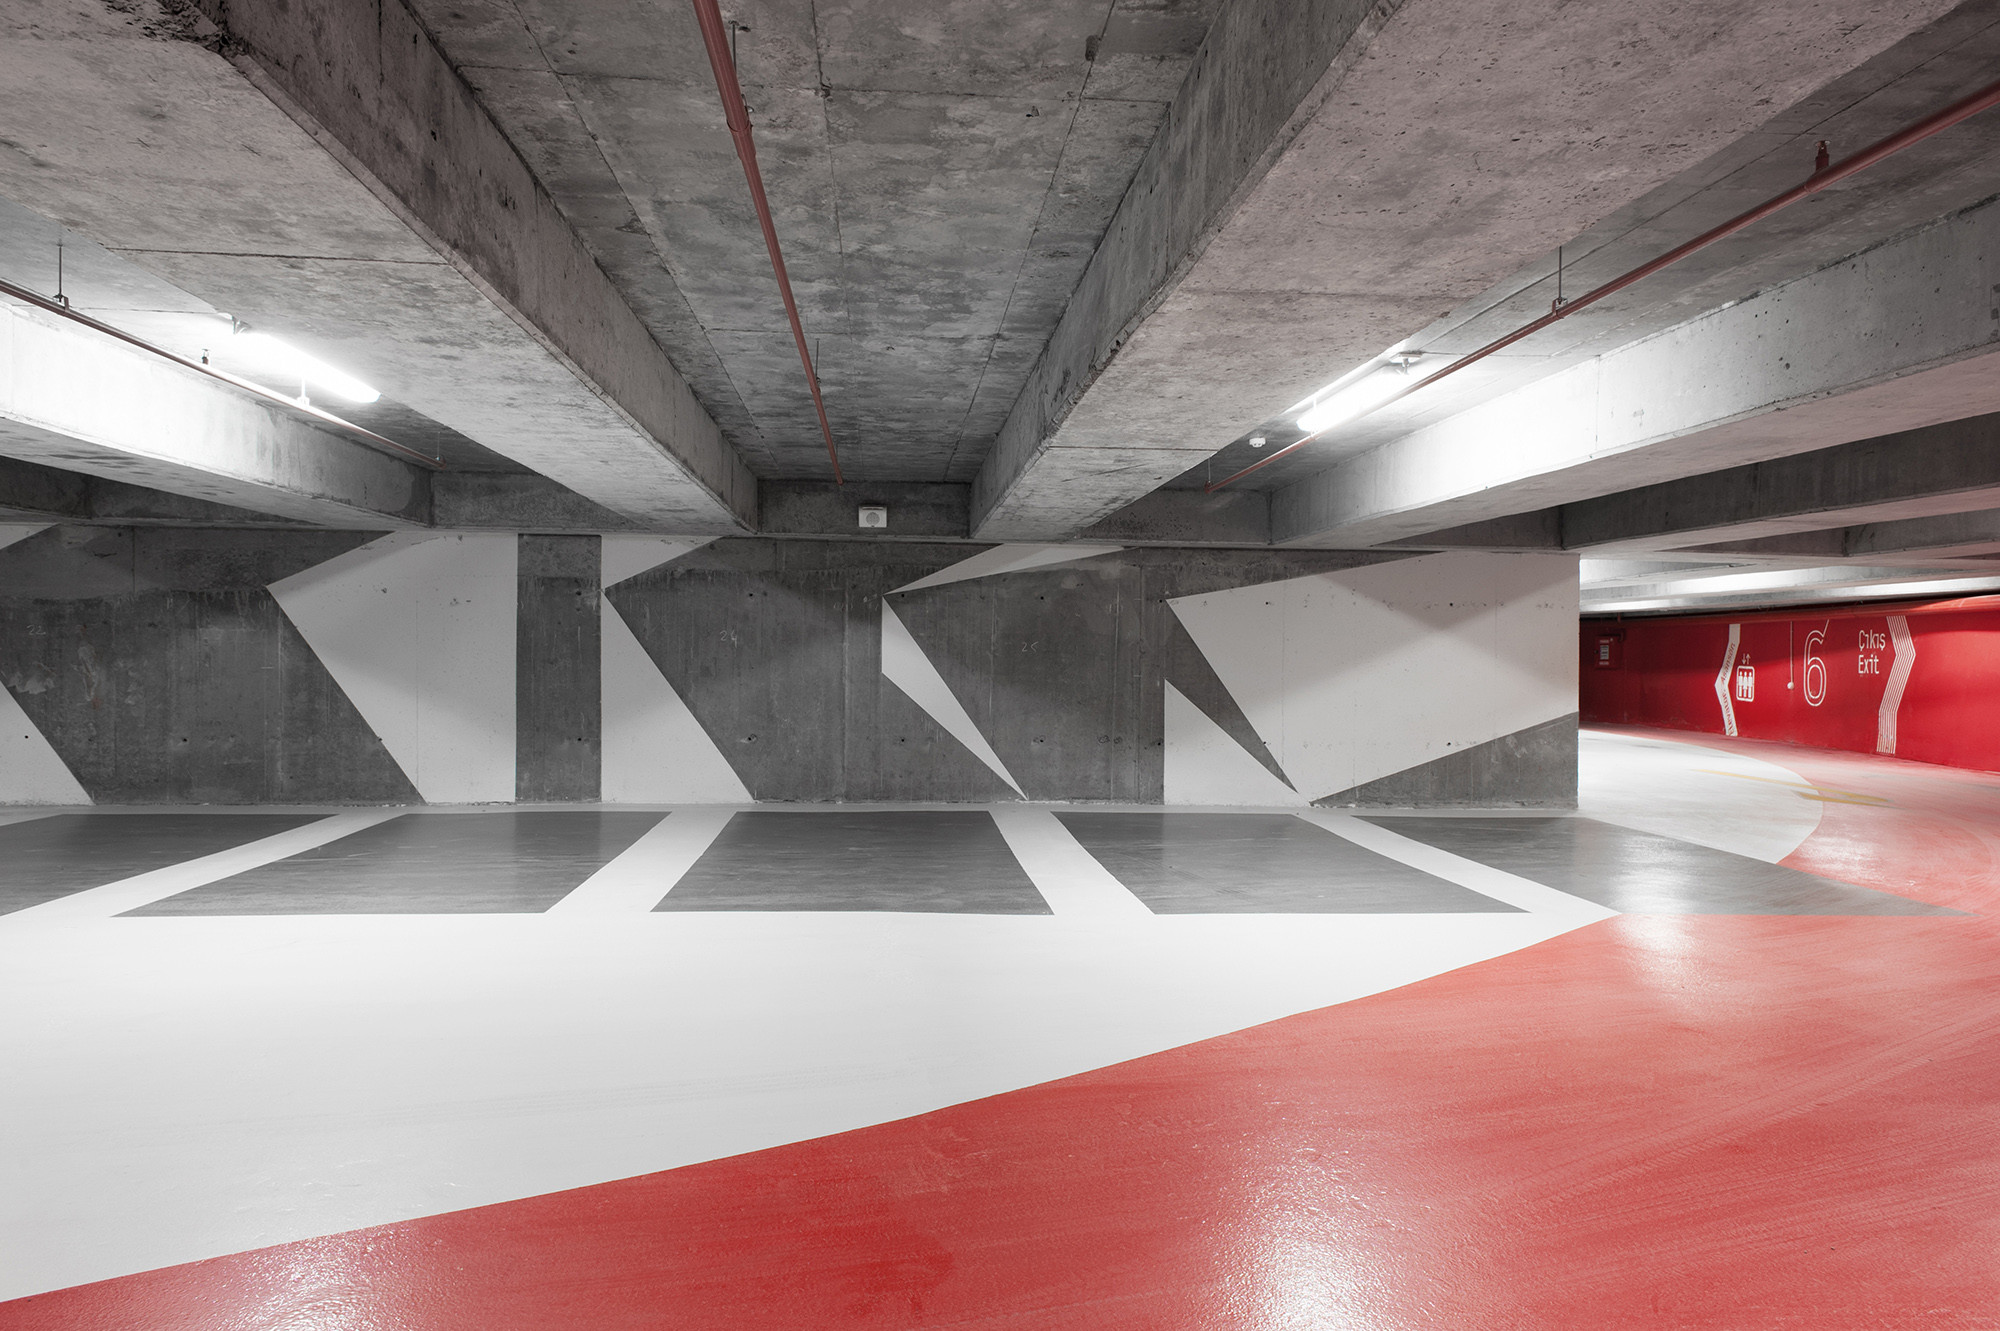 Design of basement car parking - 249 Best Images About Type Parking On Pinterest Cars Architecture And Miami